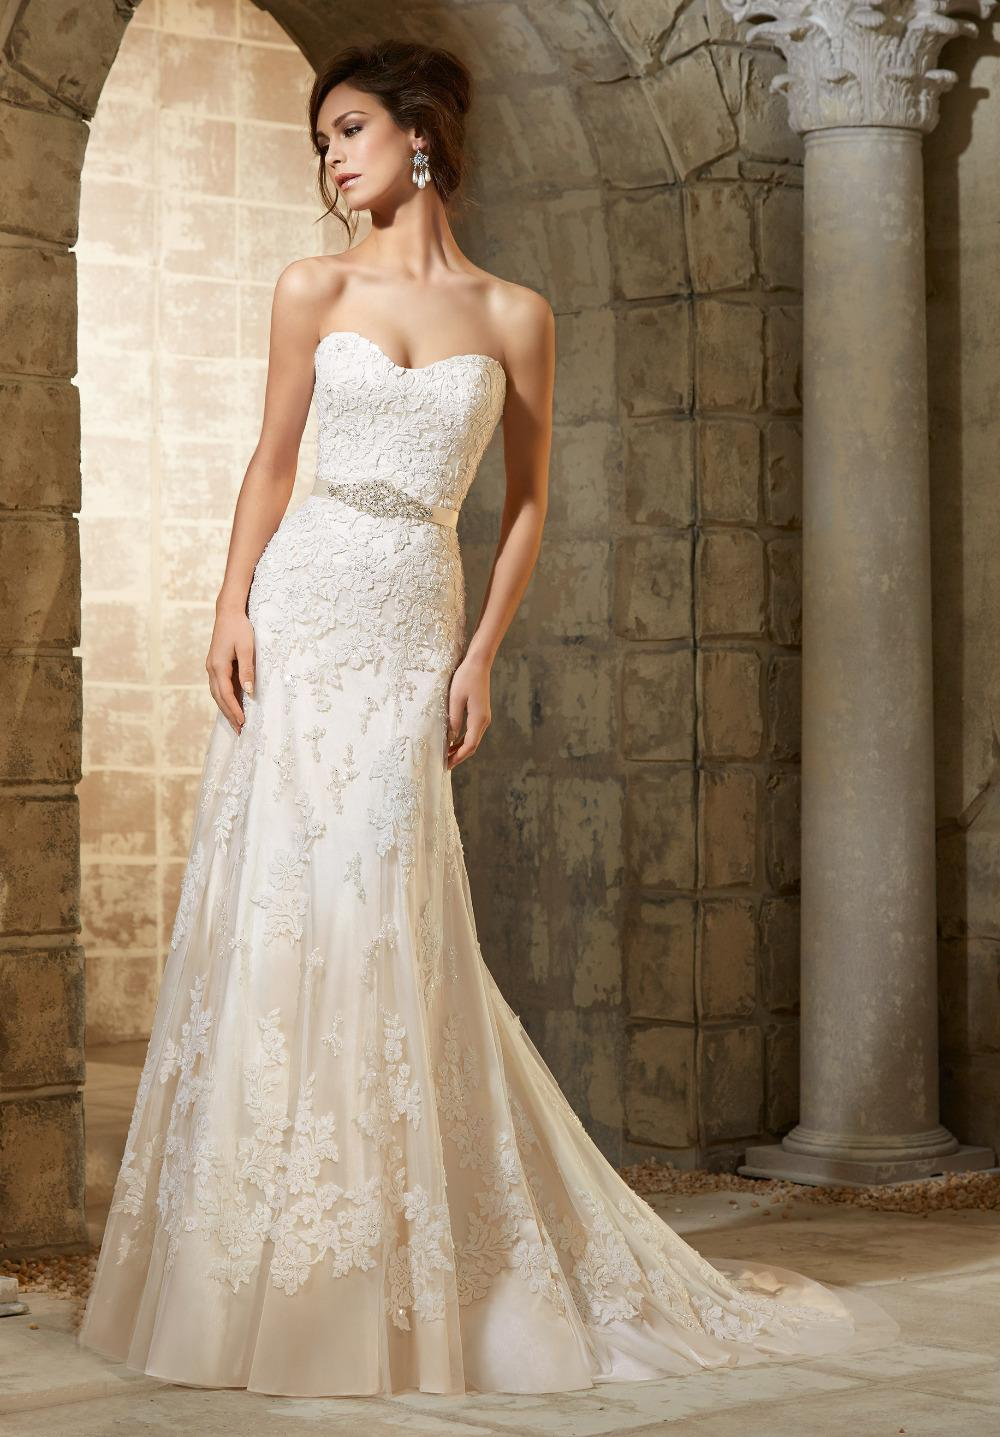 Elegant sheath lace long wedding dresses white ivory 2015 for White or ivory wedding dress